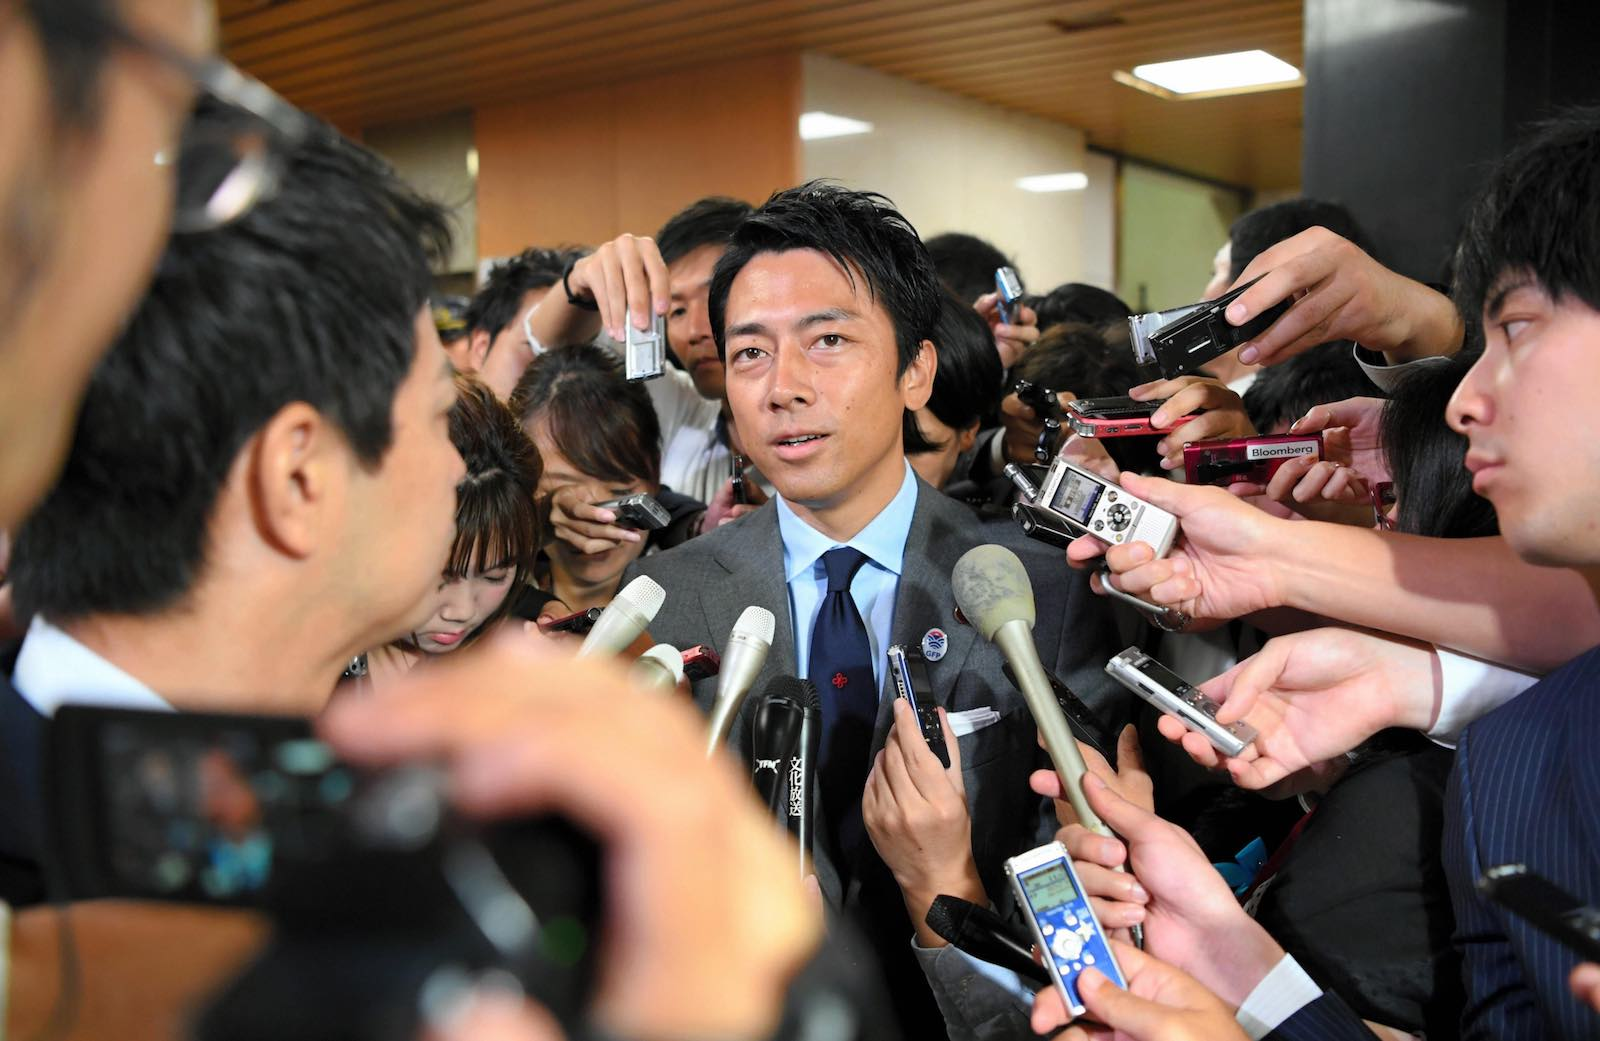 Politics is in the family - Shinjiro Koizumi (Photo: The Asahi Shimbun via Getty Images)